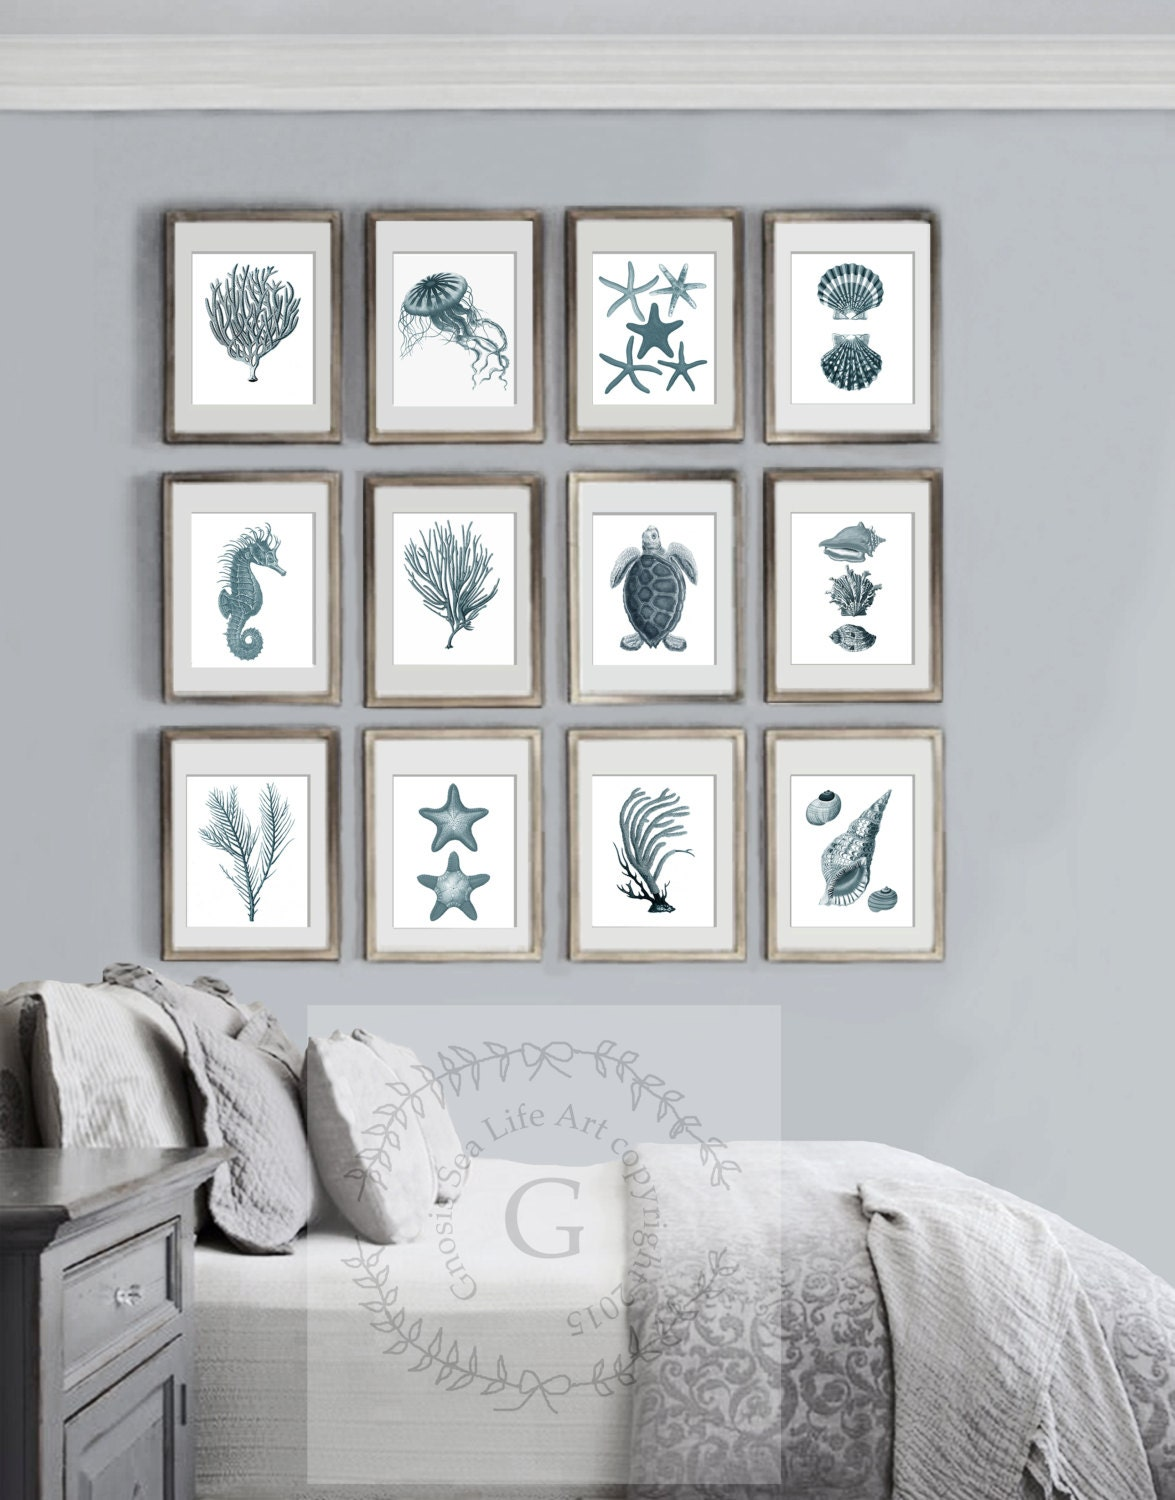 summer beach home decor sea coral decor beach art decor set of 12 prints - Coastal Wall Decor